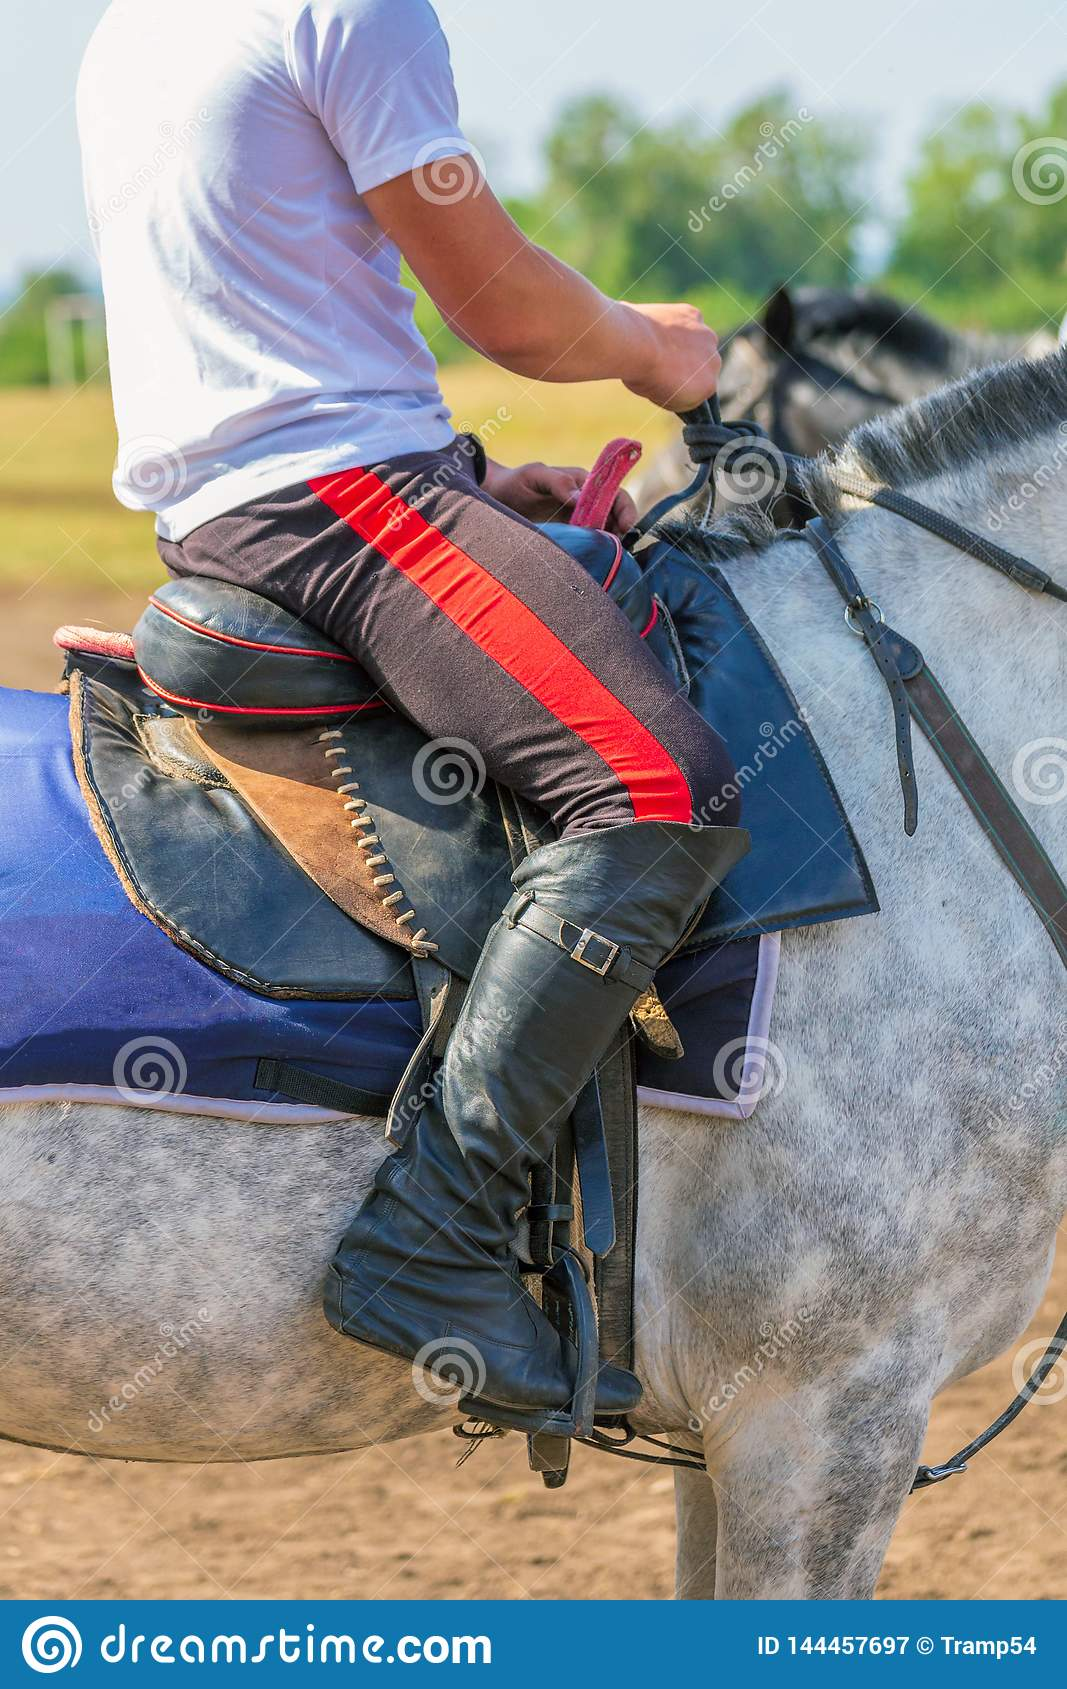 760 Riding Stirrups Photos Free Royalty Free Stock Photos From Dreamstime